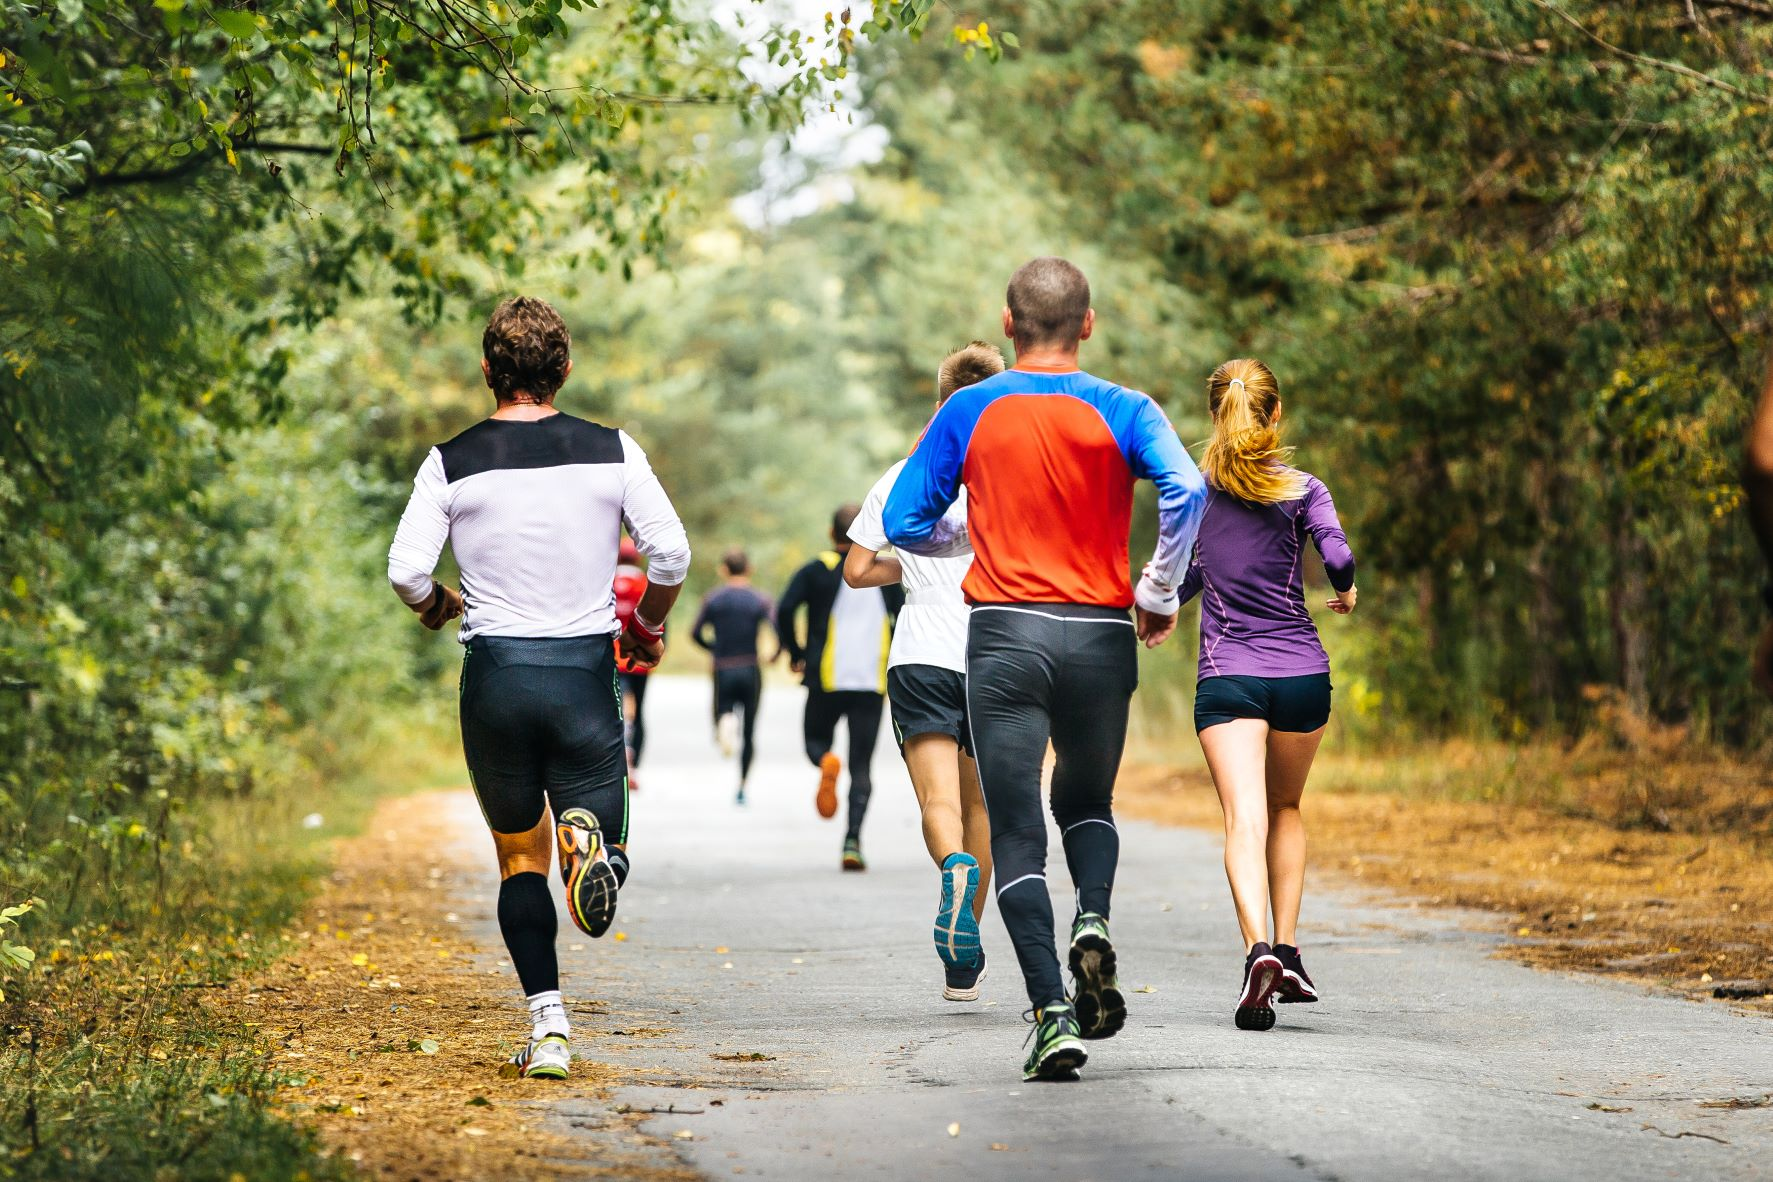 Group of runners on a paved trail in a treed park.